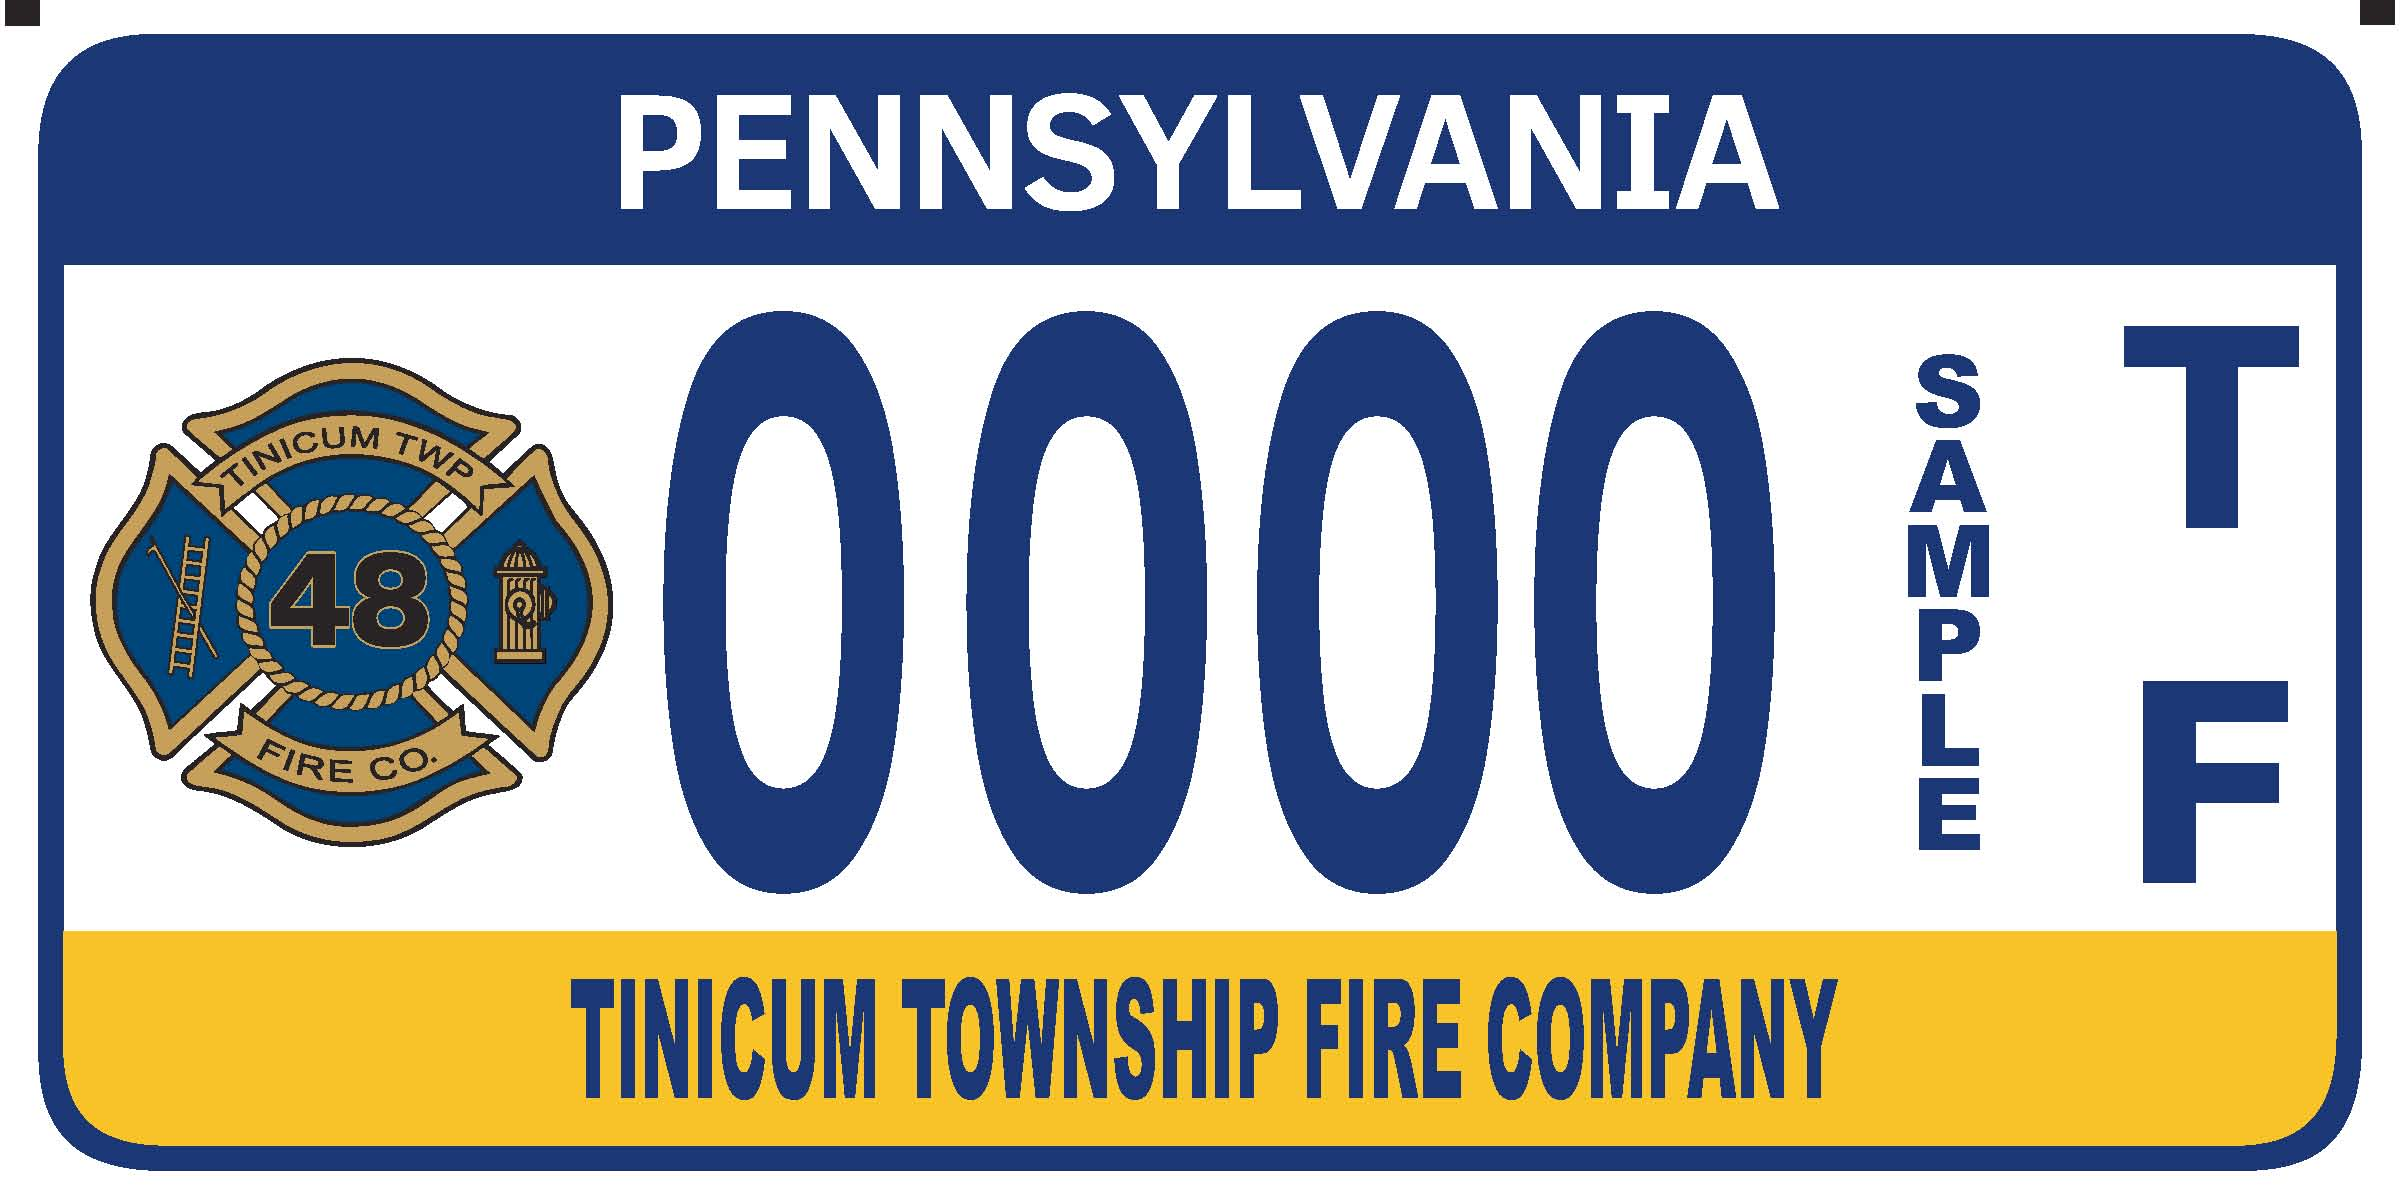 Tinicum Township Fire Company